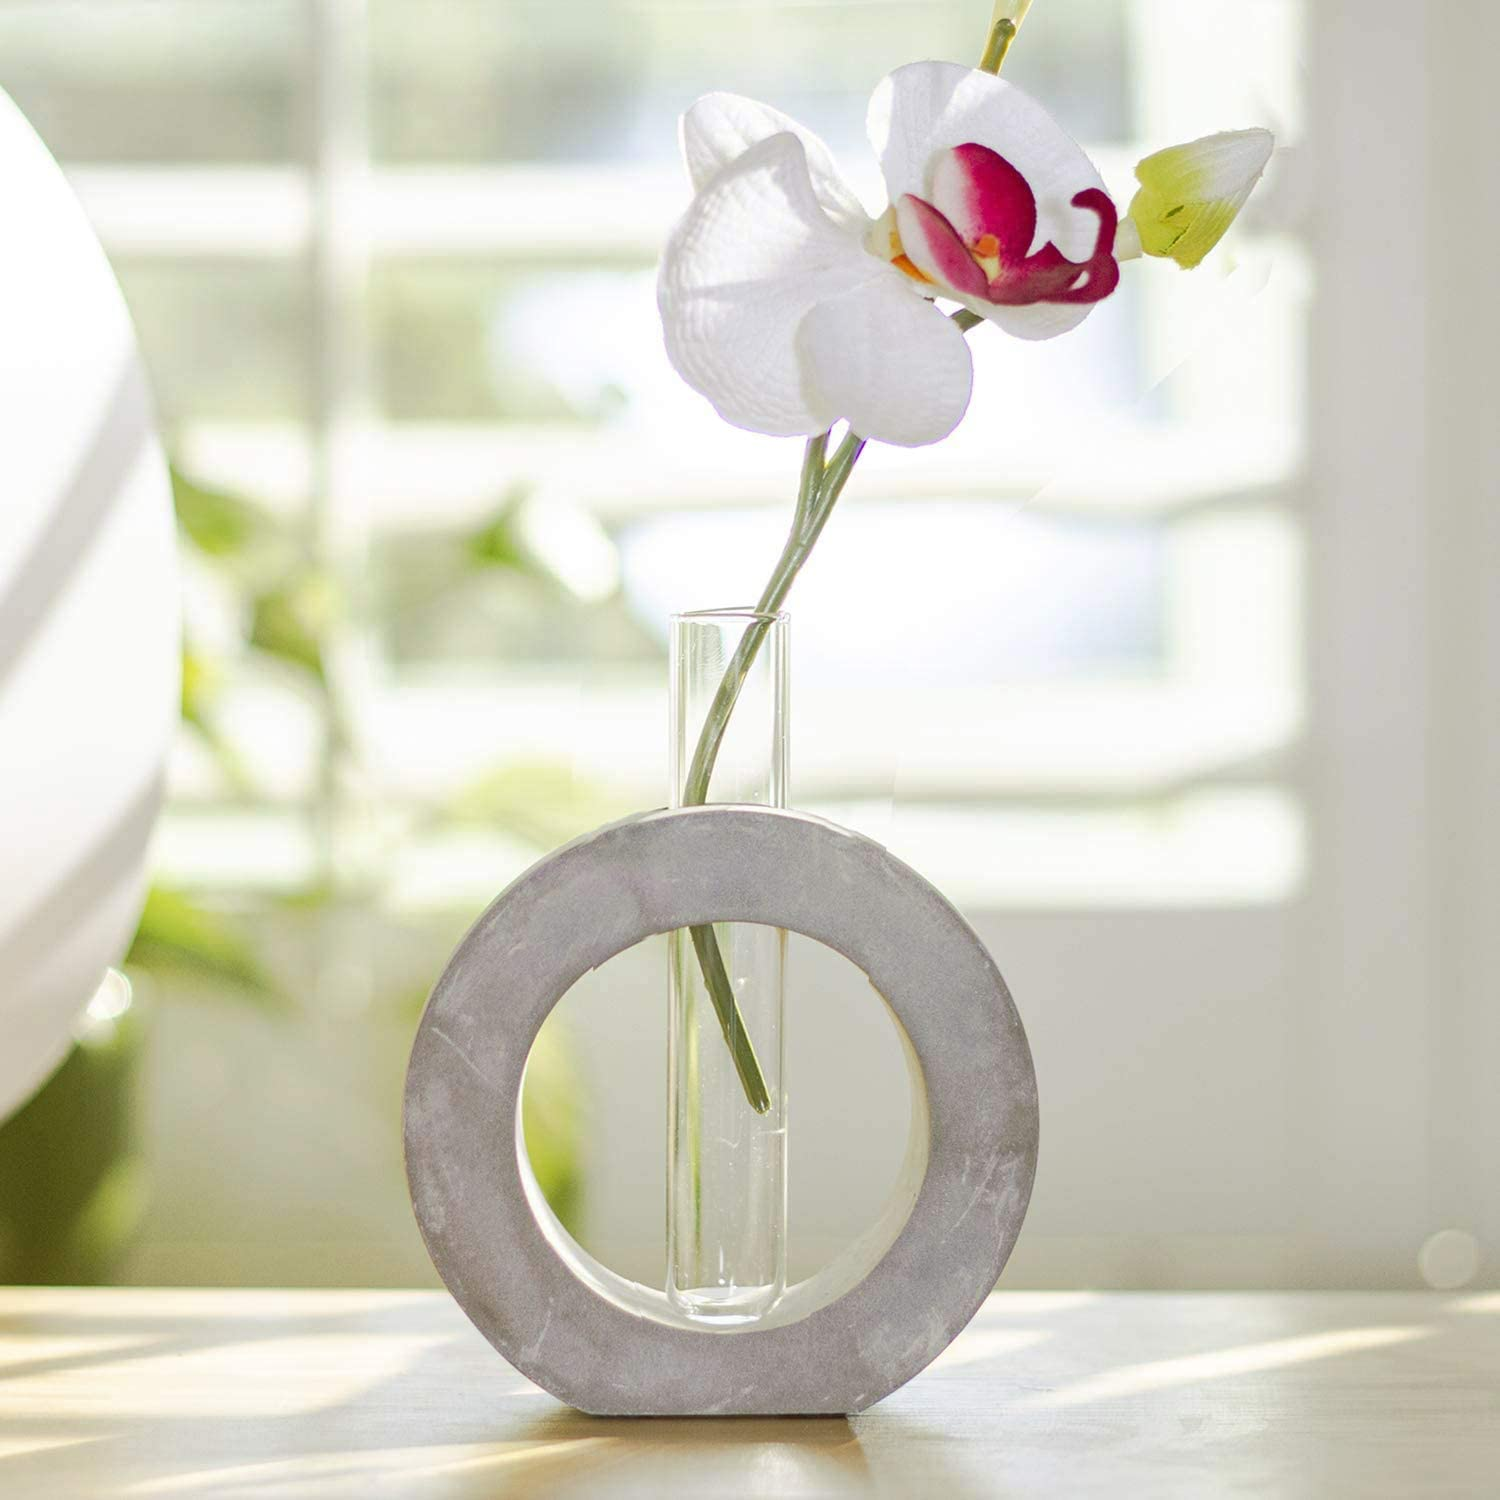 Ebros Gift Frank Lloyd Wright Contemporary Organic Geometric Shape Elements Polished Concrete Cement Floral Bud Vase As Mantelpiece Shelf Table Decorative Accent Sculpture 3d Circle Small 4 D Home Kitchen